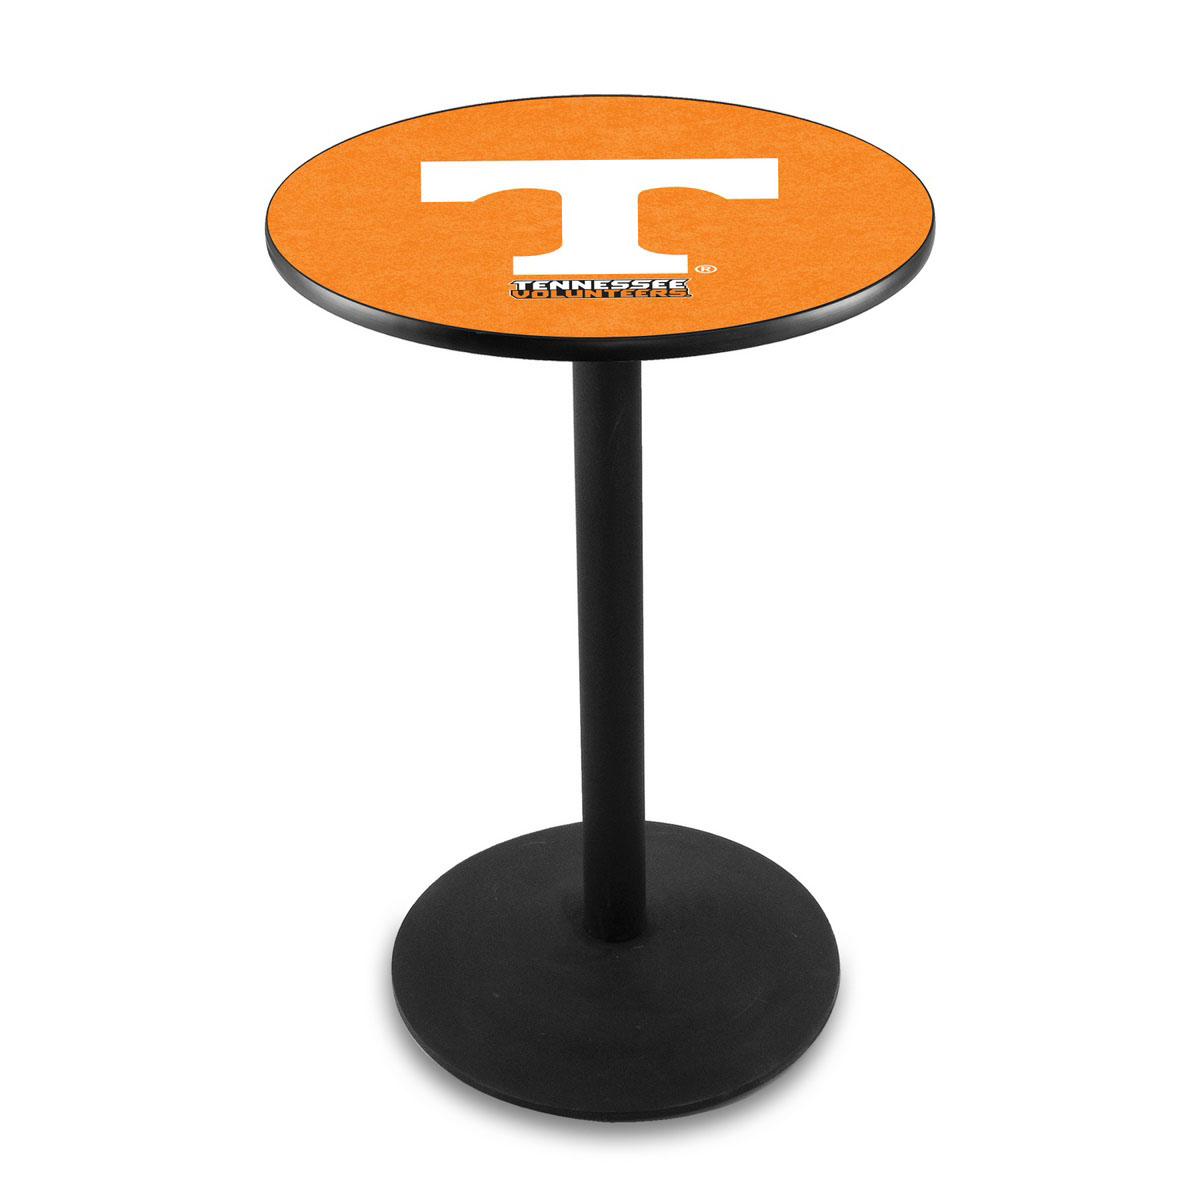 Purchase University Tennessee Logo Pub Bar Table Round Stand Product Photo